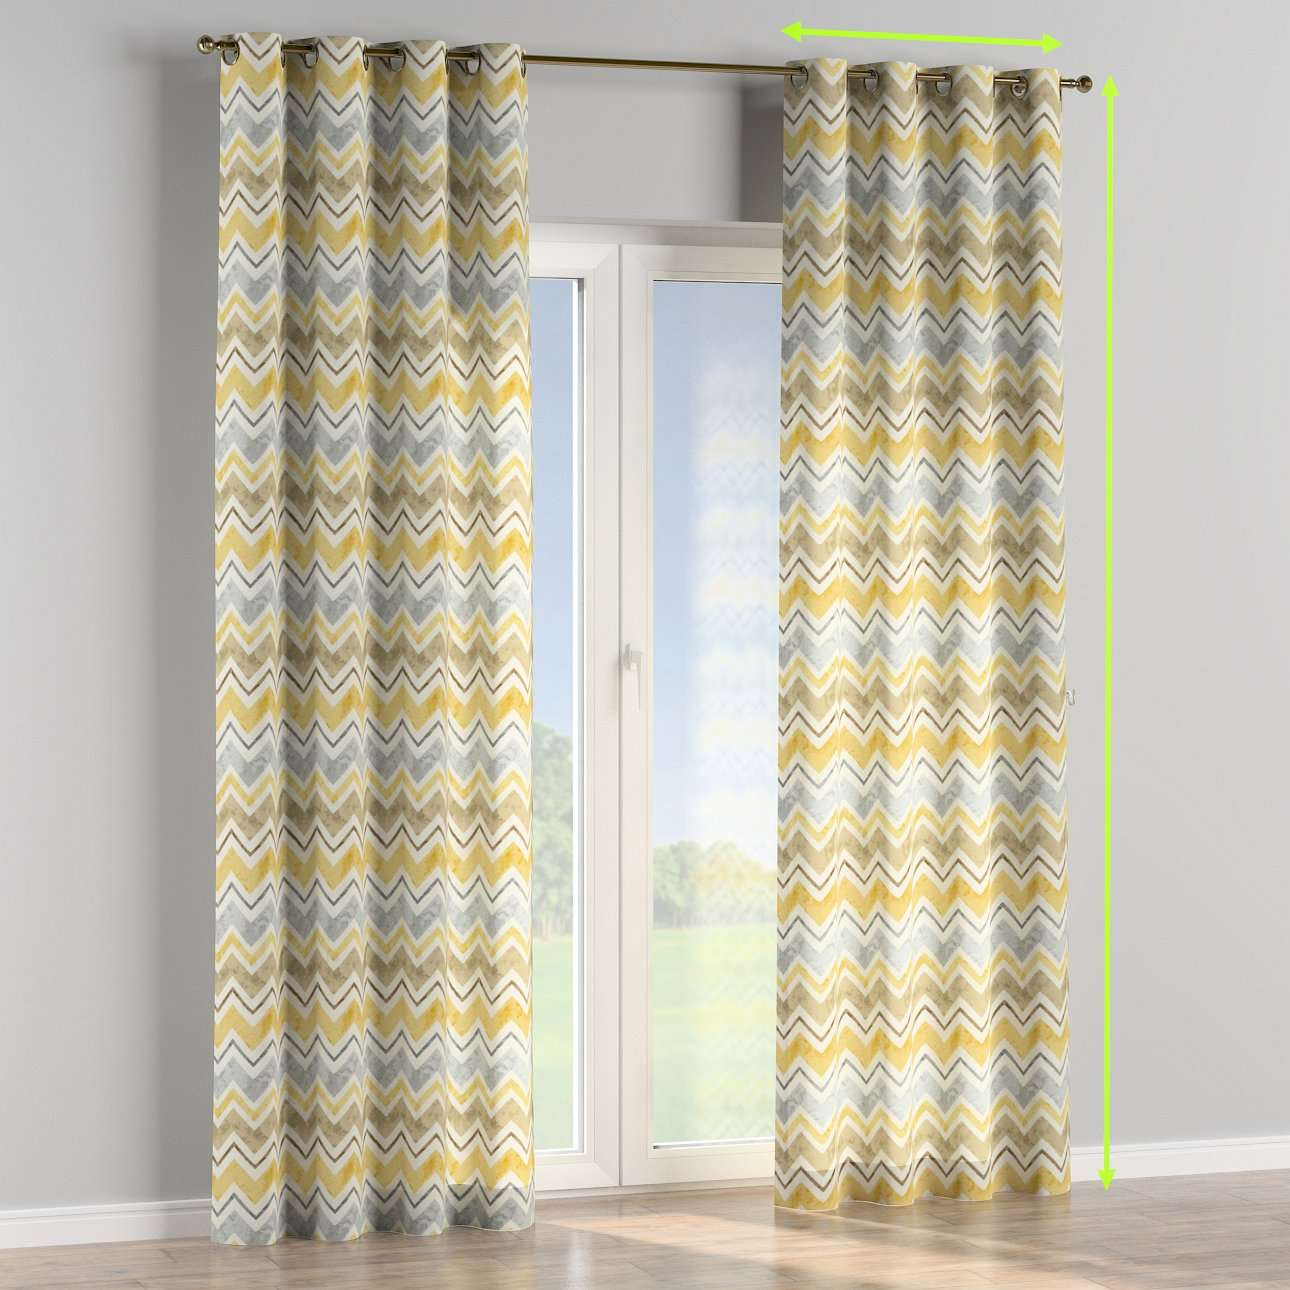 Eyelet curtains in collection Acapulco, fabric: 141-39